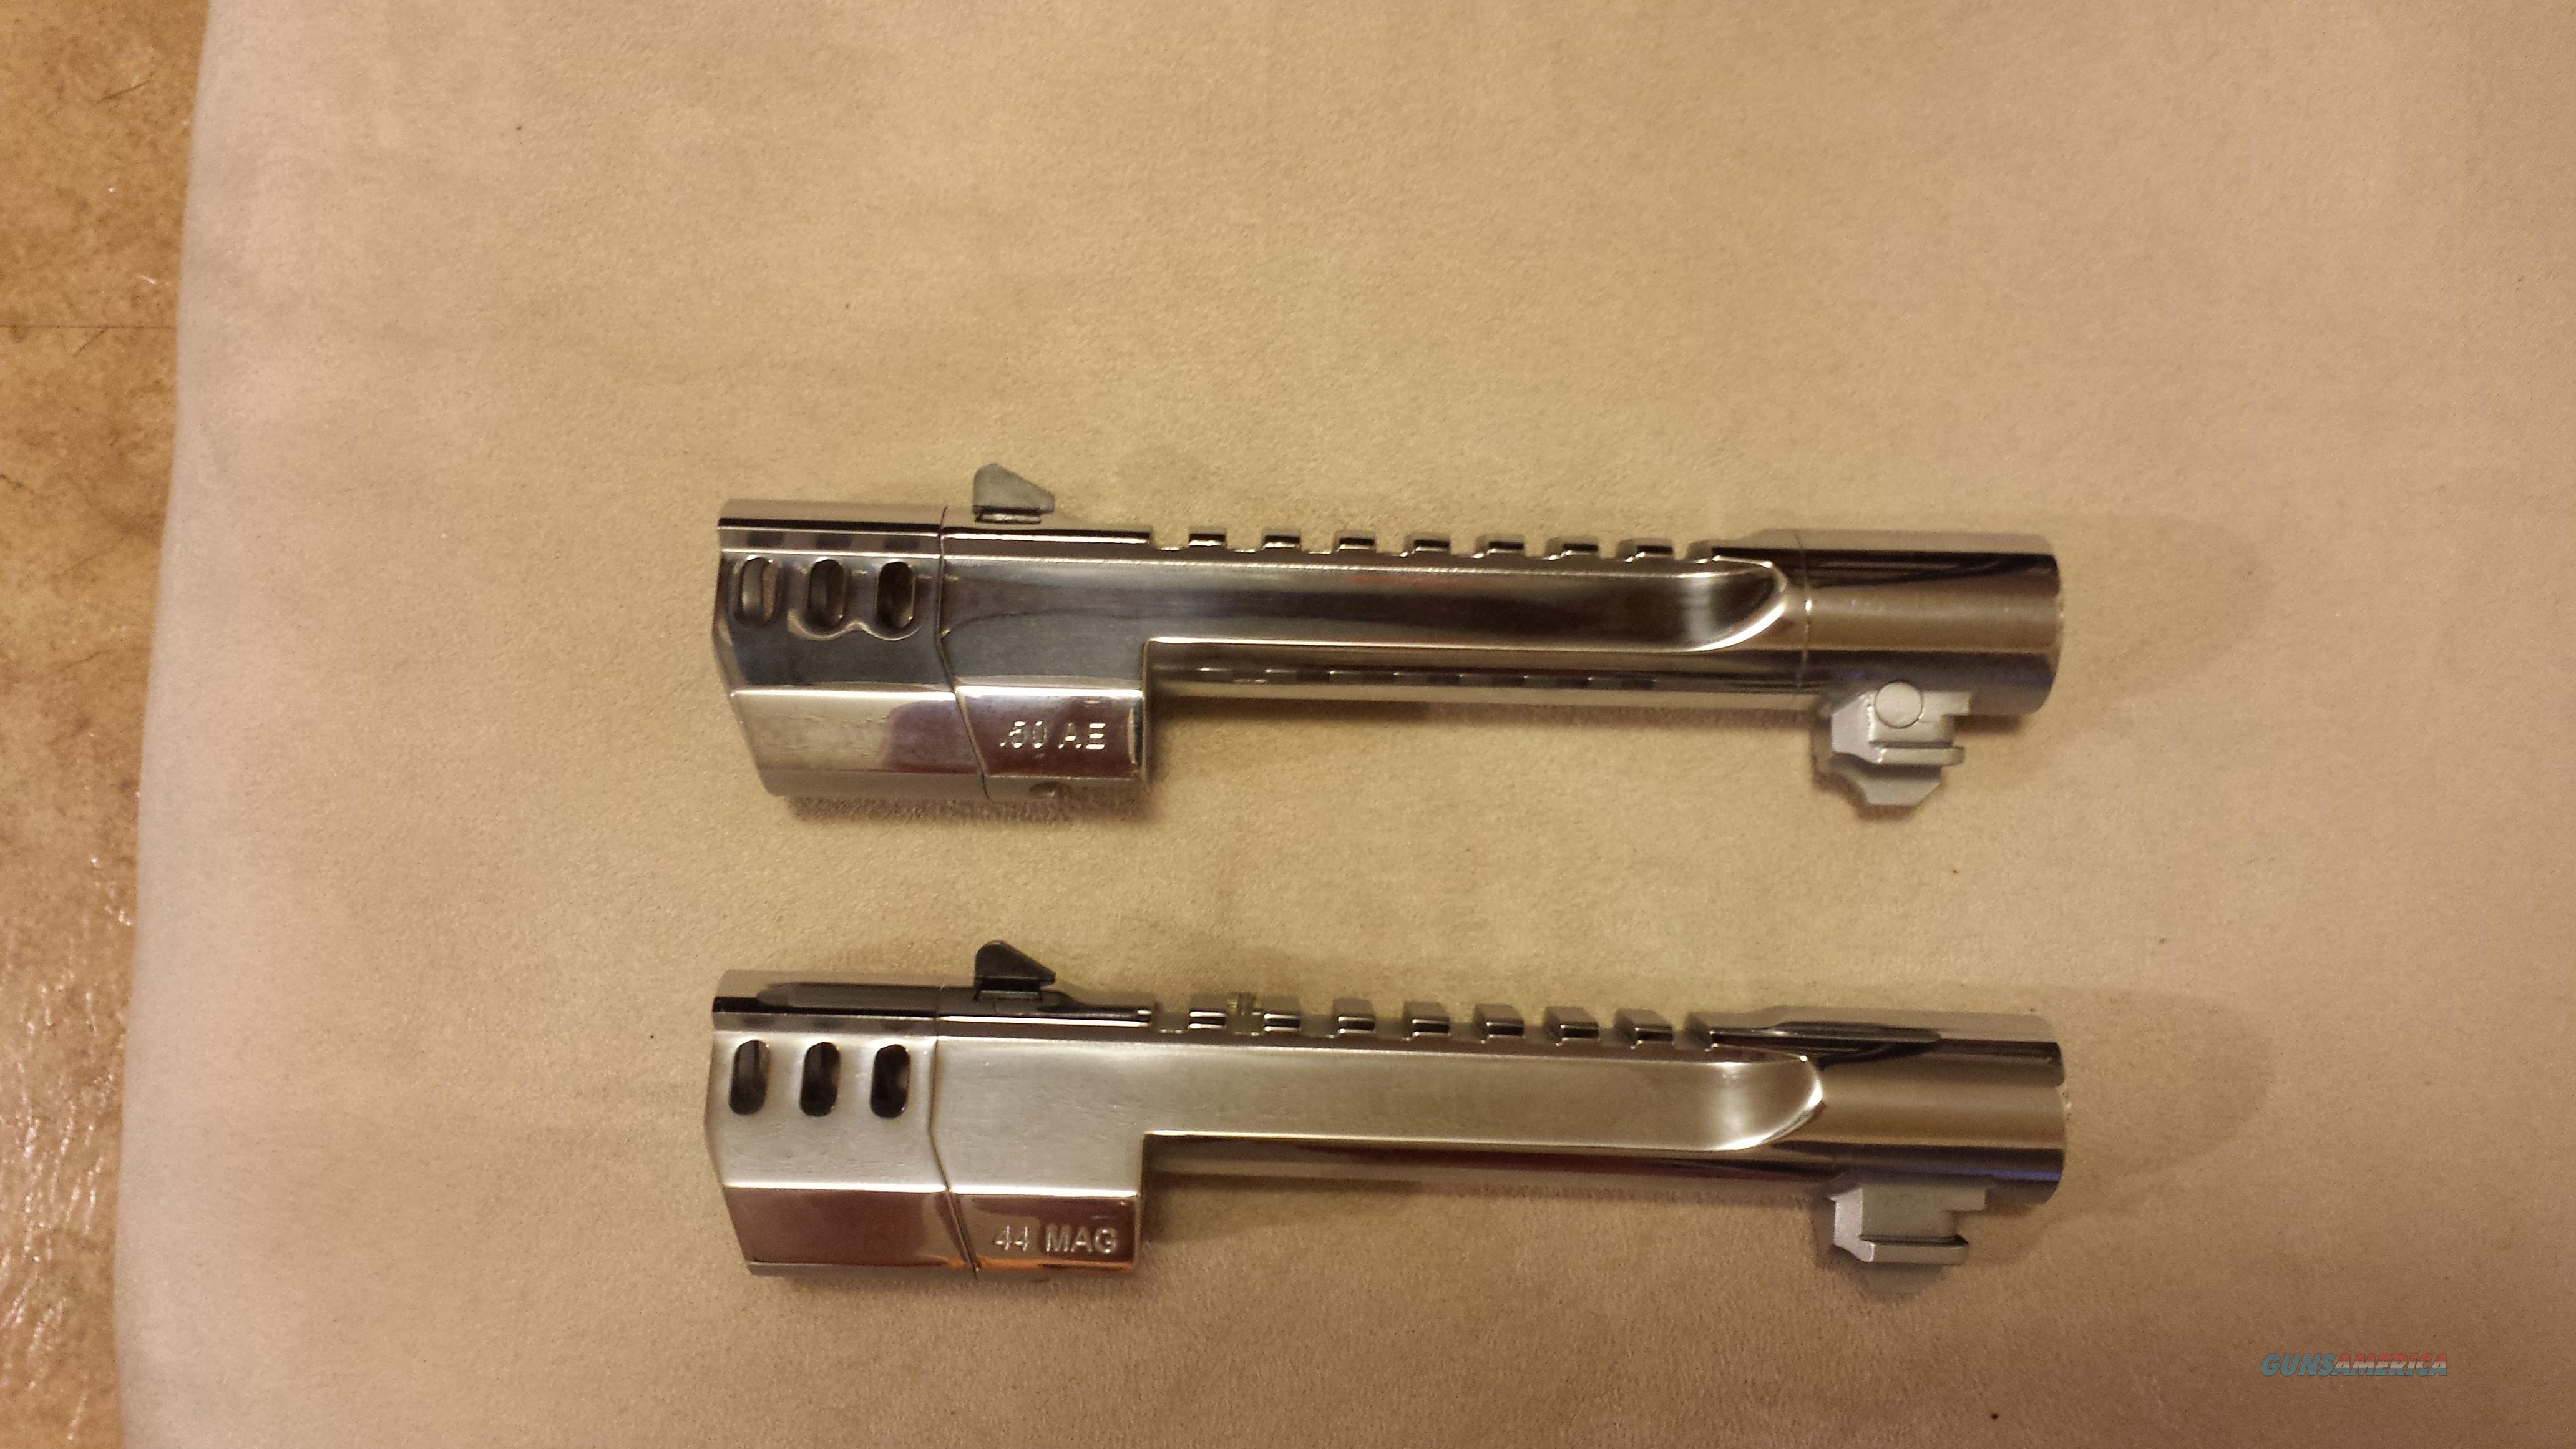 Desert Eagle Barrels with Muzzle Brake, 50AE & 44MAG  Guns > Pistols > Desert Eagle/IMI Pistols > Desert Eagle